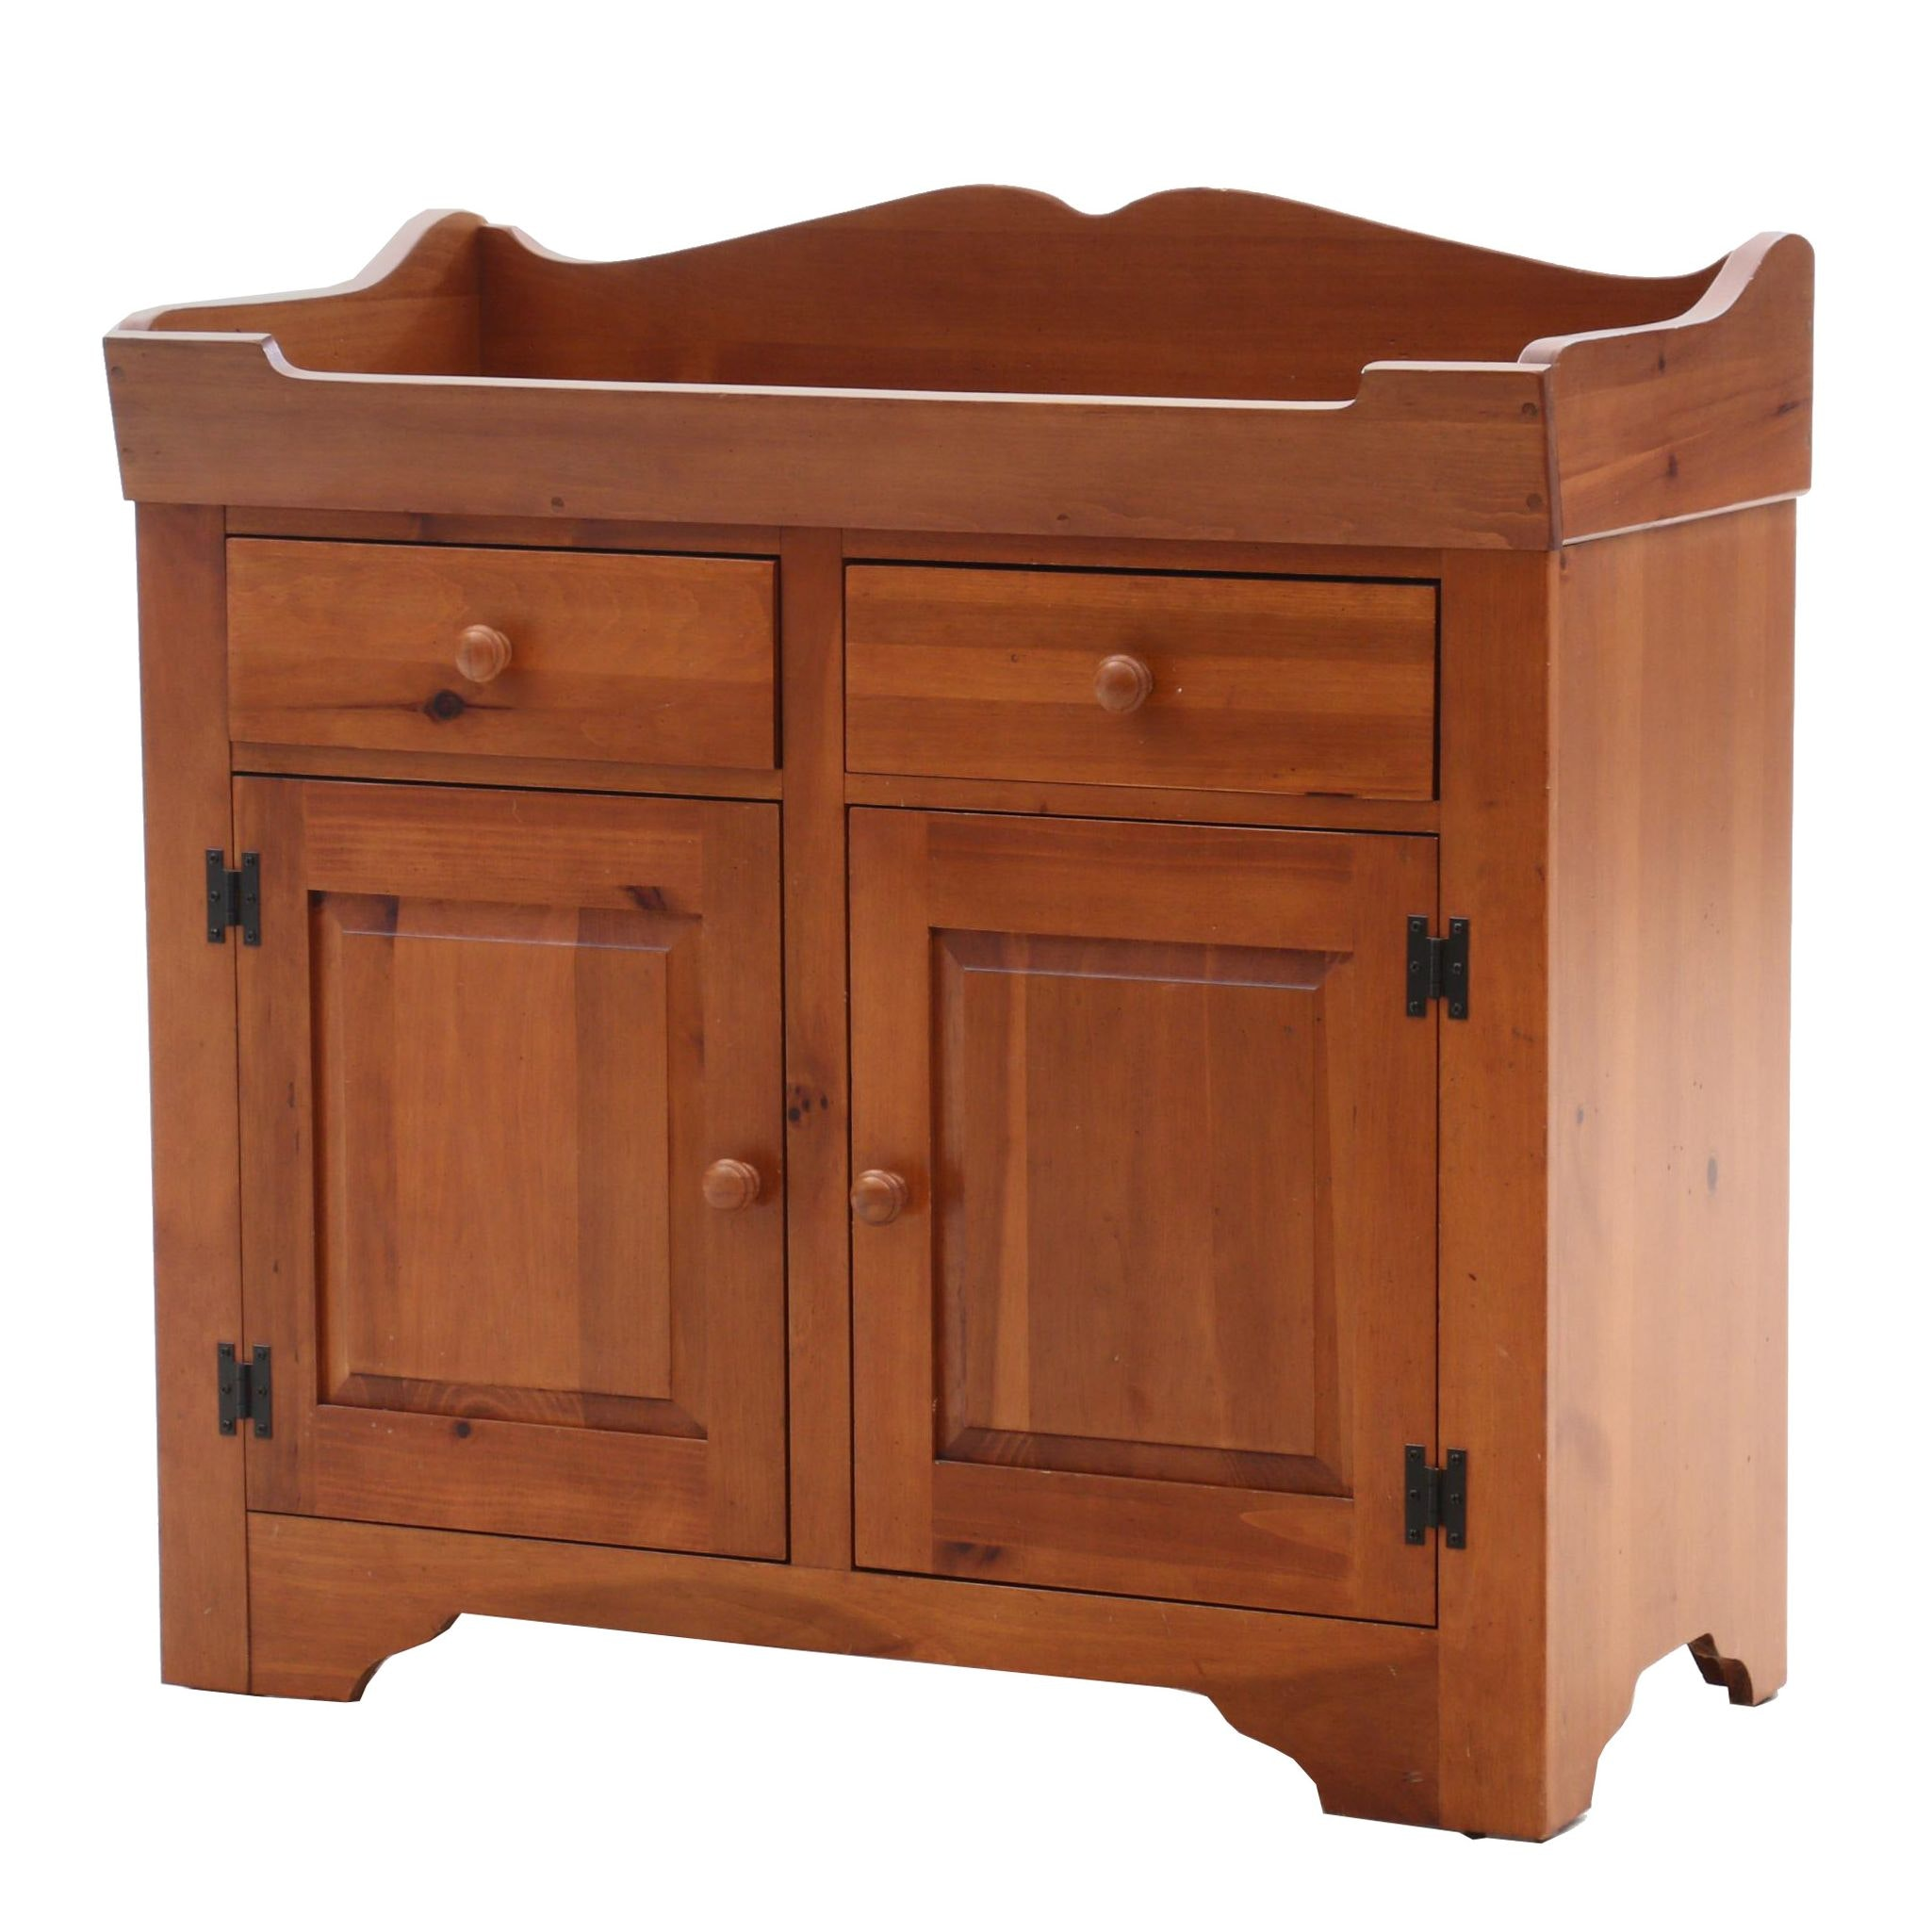 Broyhill Early American Style Pine Dry Sink Cabinet